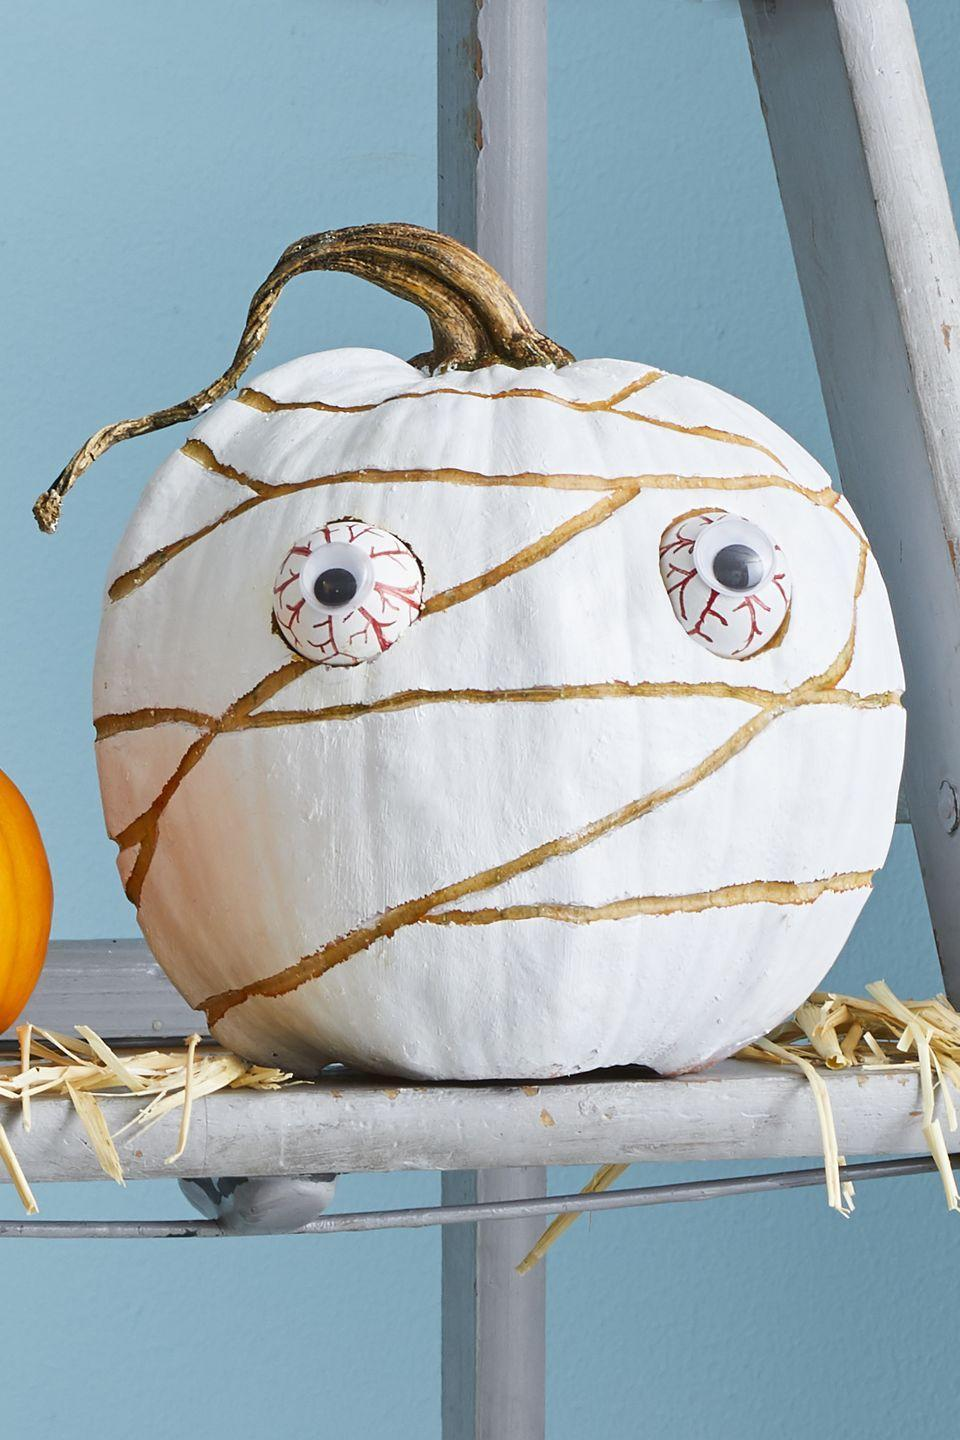 """<p>Though this cool little design does require a little cutting, it's not technically carving. Start by painting your pumpkin white (unless you bought a white pumpkin, in which case, go onto the next step). Draw any sort of wrap design on it, and then etch the lines with a linoleum-cutting tool. Glue googly eyes onto a couple Ping-Pong balls and draw red veins. Finally, cut out the eye sockets so that the balls fit inside of it. </p><p><a class=""""link rapid-noclick-resp"""" href=""""https://www.amazon.com/Ping-Pong-Balls-White-2-Pack/dp/B01DWL911W?tag=syn-yahoo-20&ascsubtag=%5Bartid%7C10070.g.331%5Bsrc%7Cyahoo-us"""" rel=""""nofollow noopener"""" target=""""_blank"""" data-ylk=""""slk:SHOP PING PONG BALLS"""">SHOP PING PONG BALLS</a></p>"""